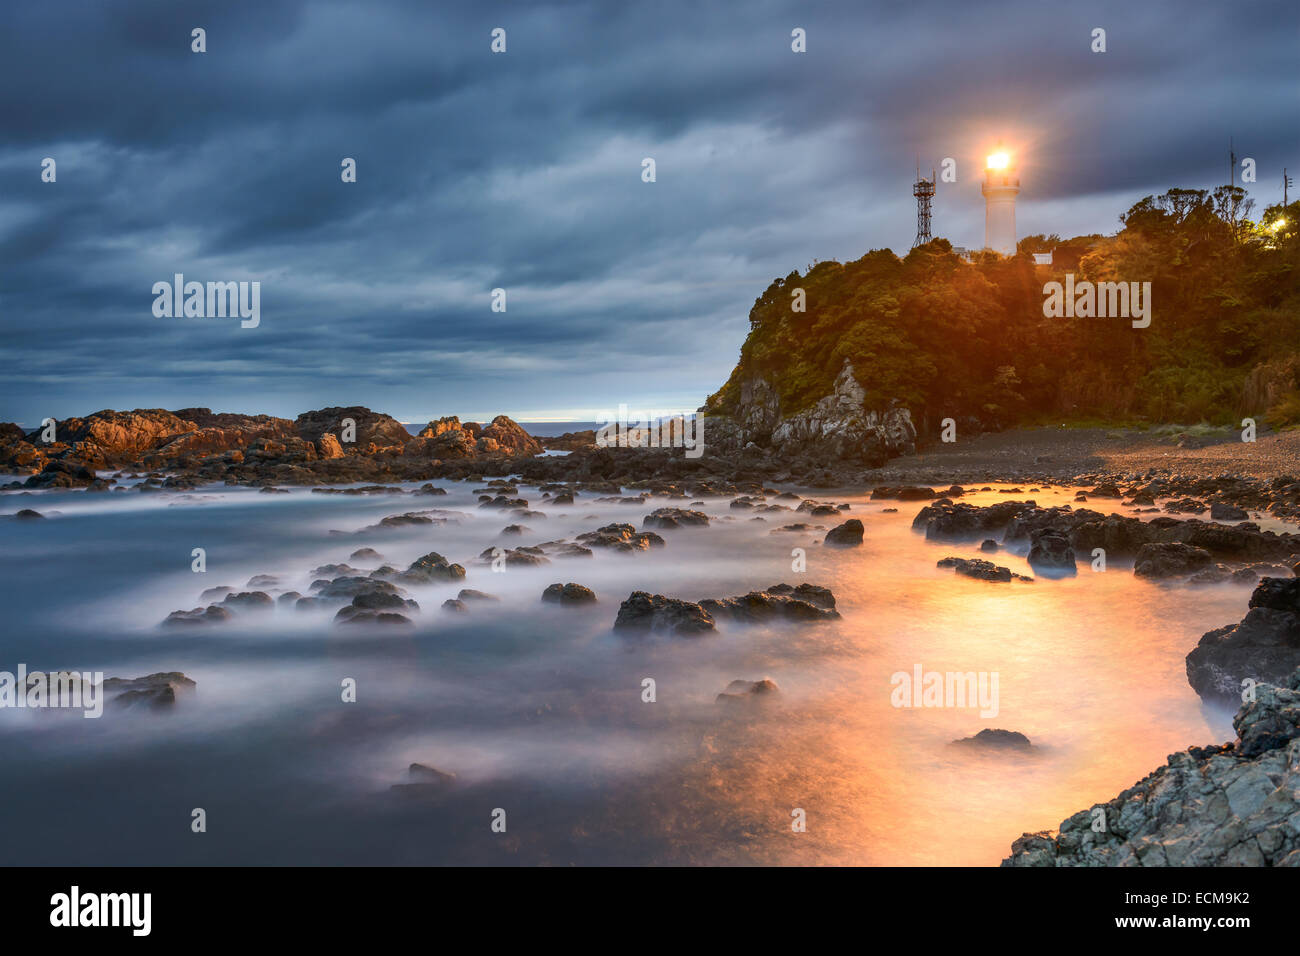 Le Japon à Shionomisaki Kushimoto, Cape, point le plus au sud de l'île principale de Honshu. Photo Stock